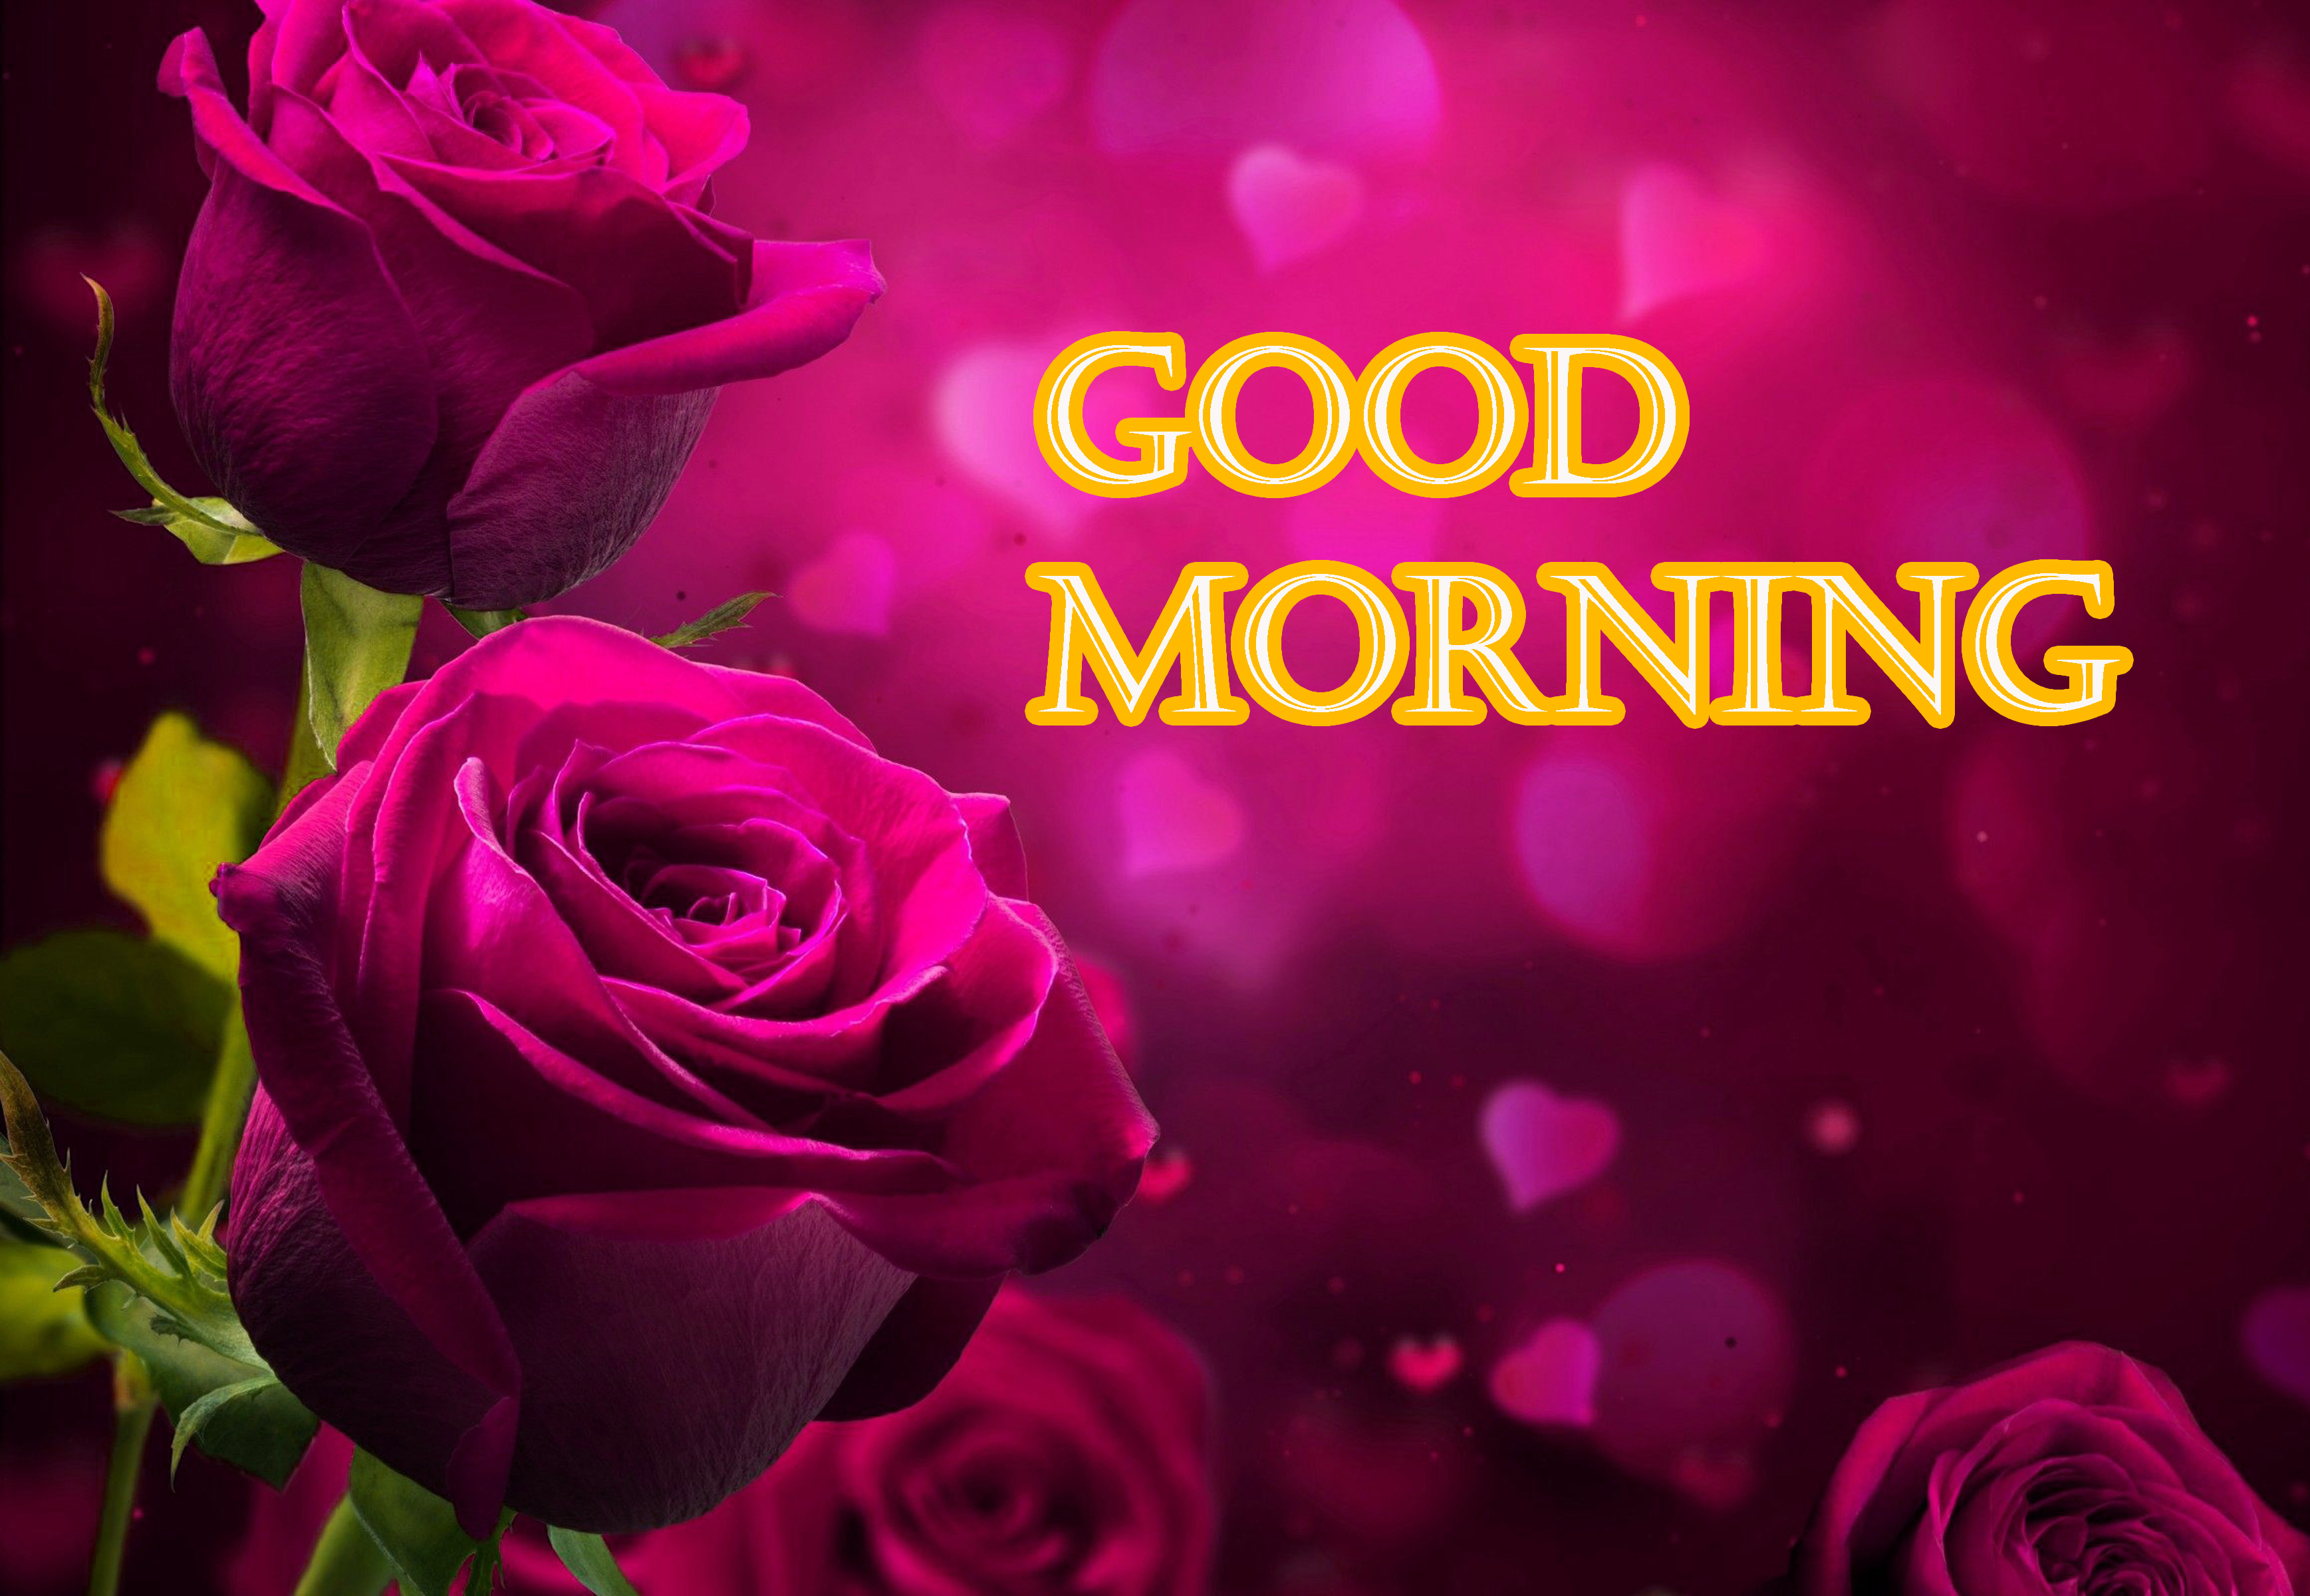 GOOD MORNING IMAGE PICTURES WALLPAPER FOR FACEBOOK